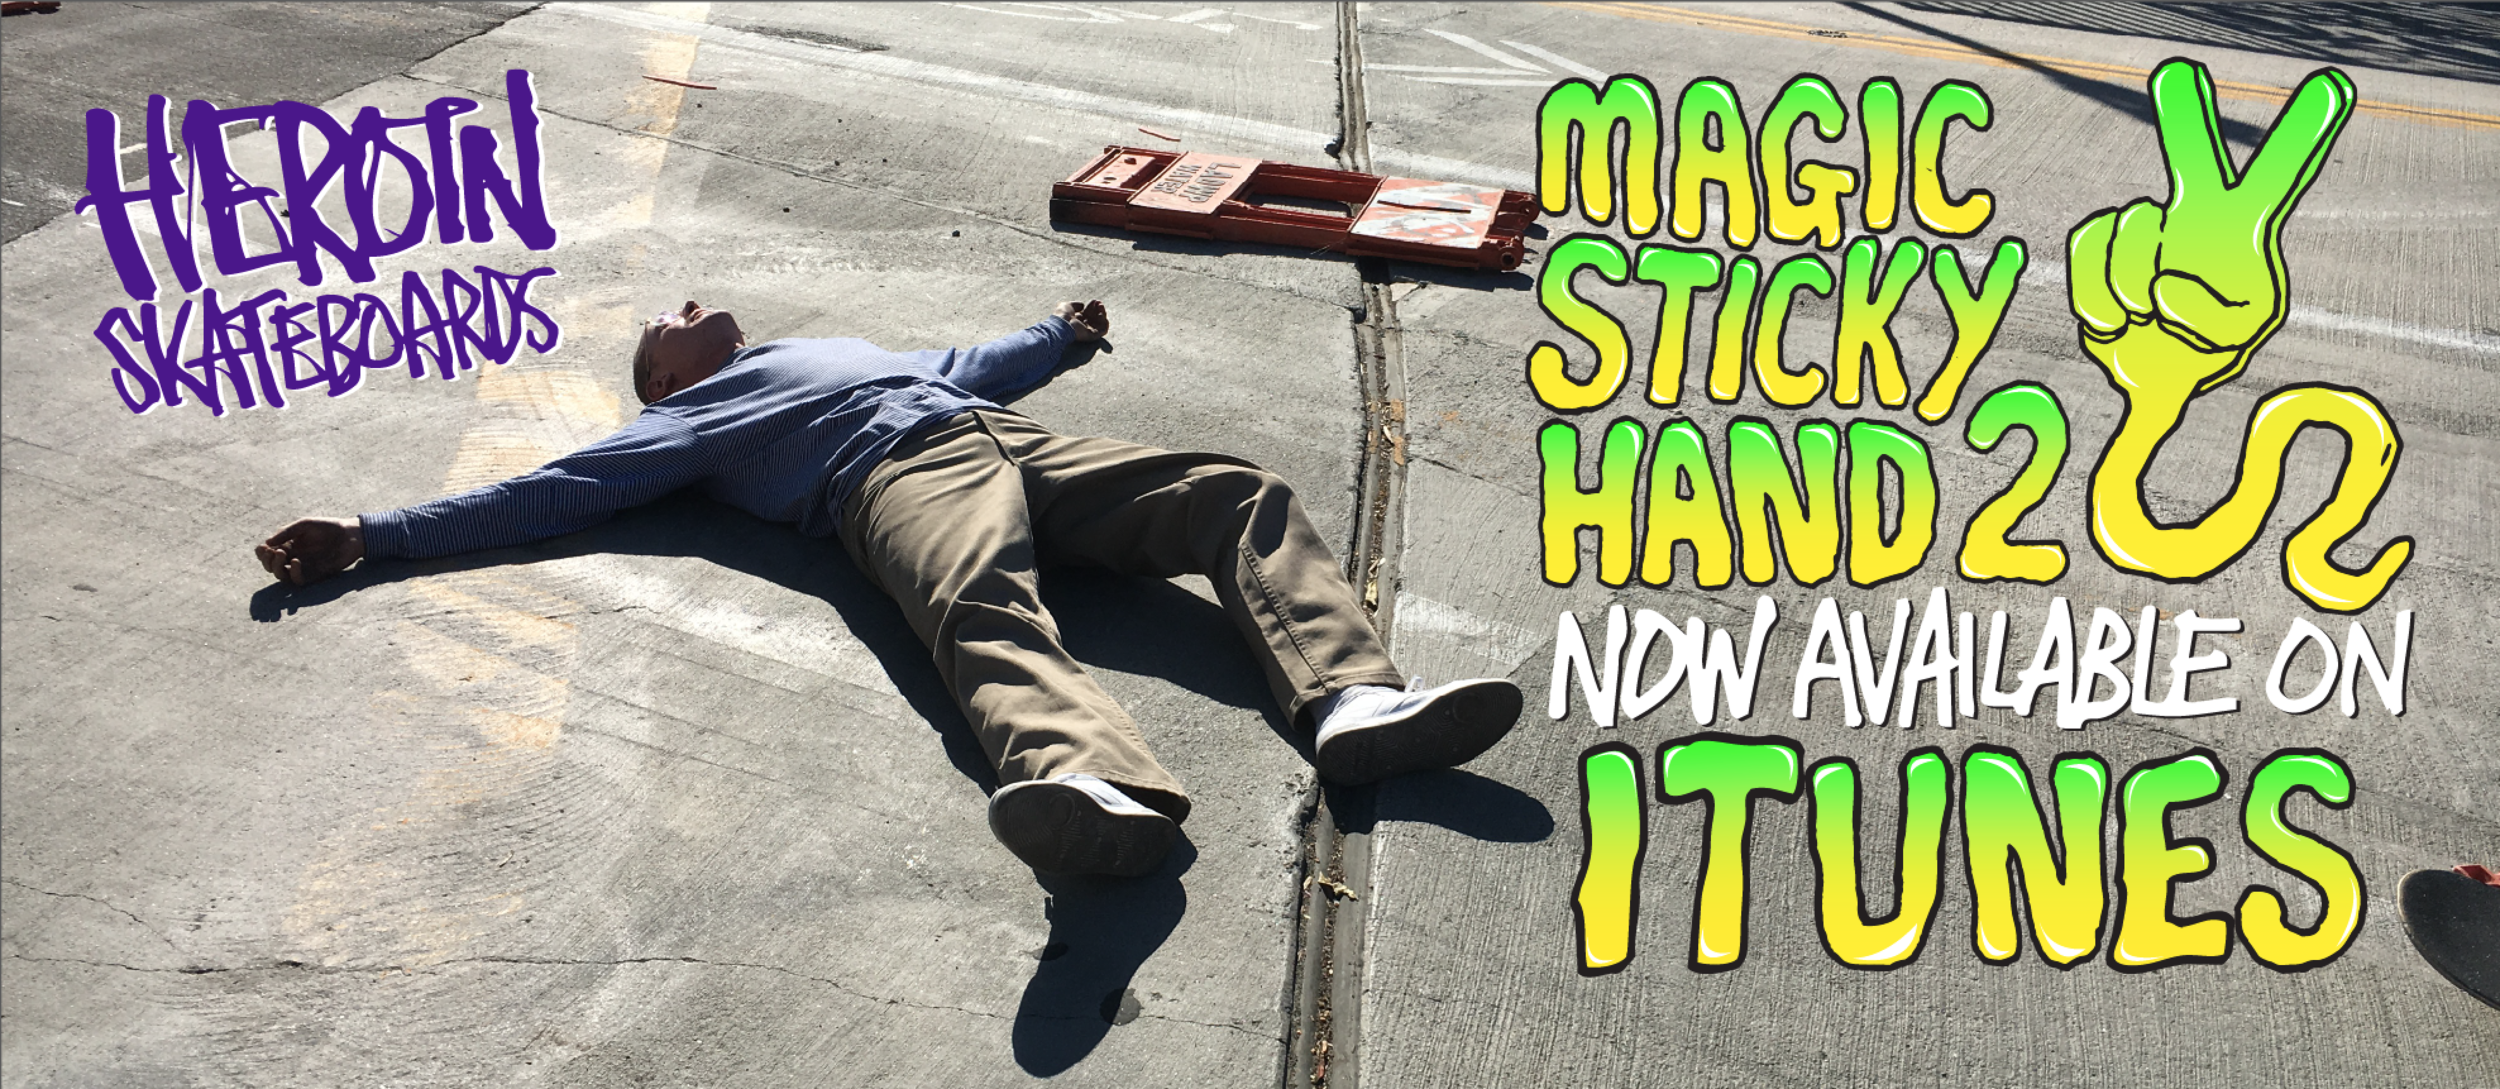 Magic Sticky Hand 2 is finally available to own in a virtual sense. I wanted Skate Shops to have the DVD copies first and to give them a chance to sell through. But why should DVD player owners have all the fun? Now you can buy our latest video, featuring Pat Franklin, Anaiah Lei, Zach Riley, Craig Questions, and Logan Devlin, and watch it on your phone, or on your big telly. This edit has an extended Craig part, and new songs for Anaiah and Logan! Definitely worth the paltry $4.99 asking price. We made this one a short, sweet and fun video, to get you juiced up to skate.